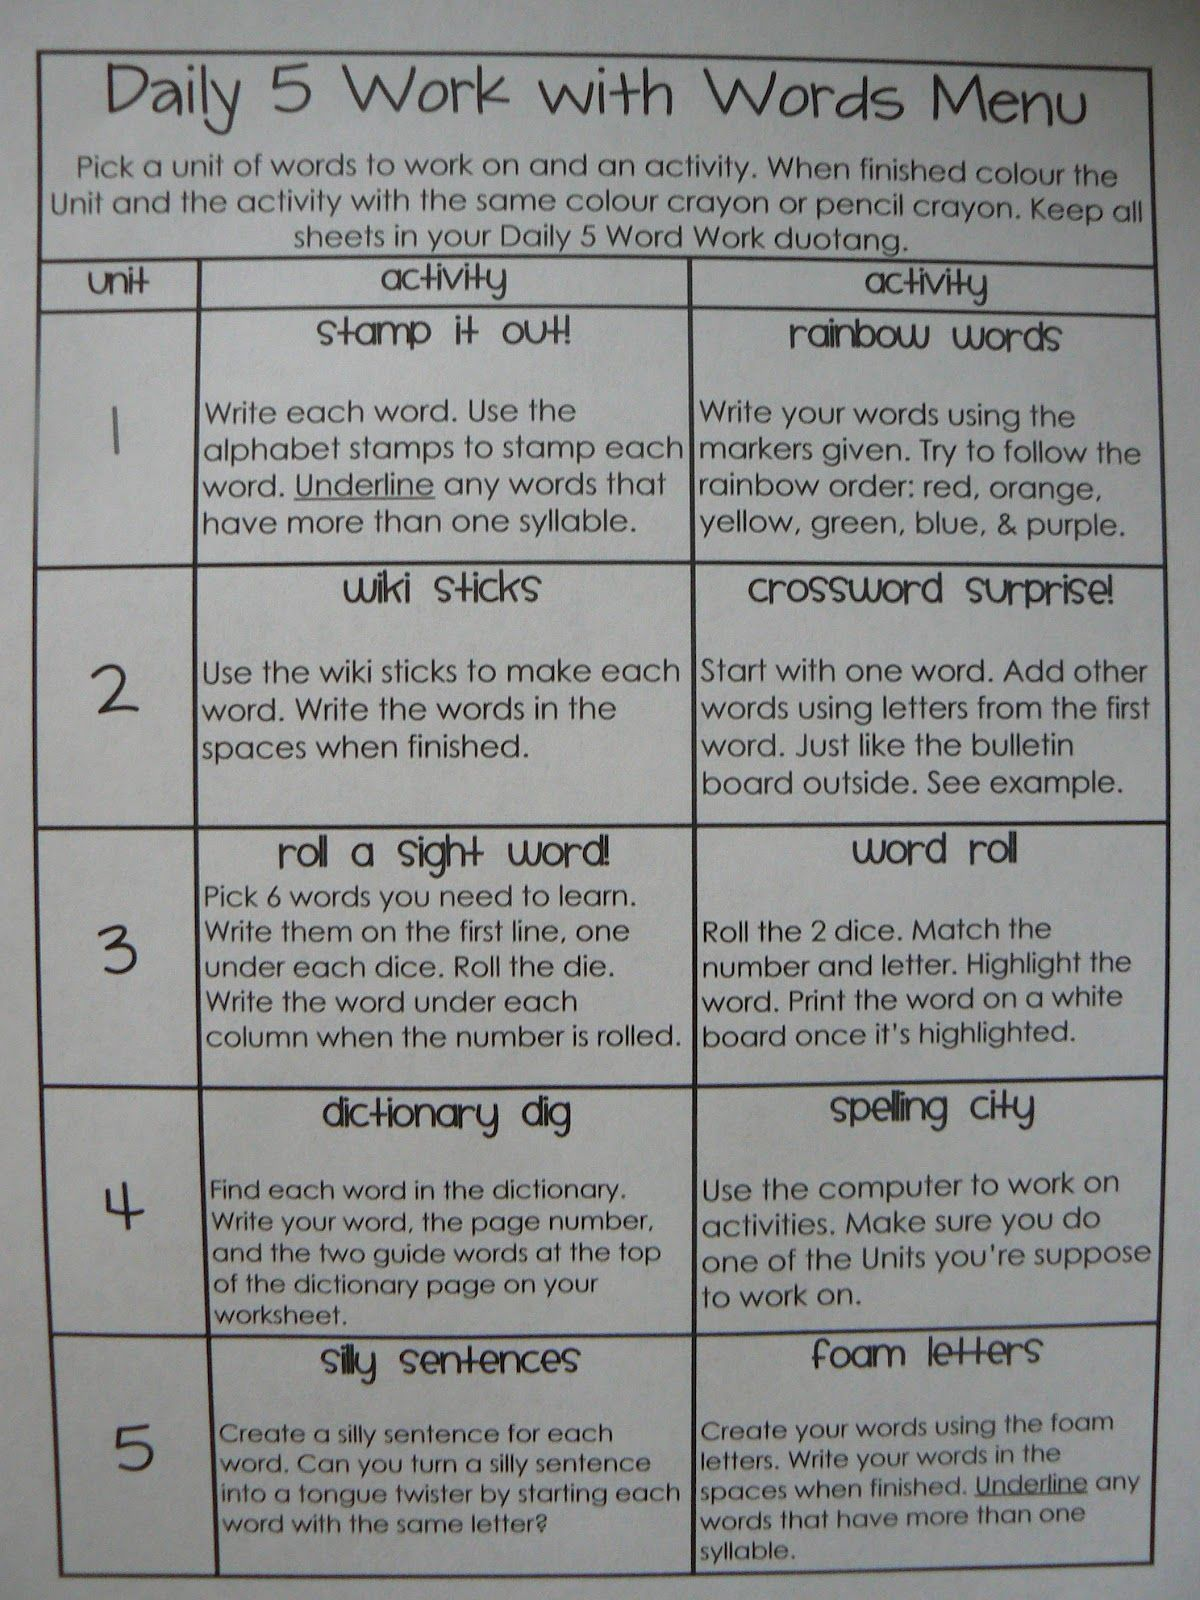 Word Works Menu Would Like To Adapt For Our Menu That